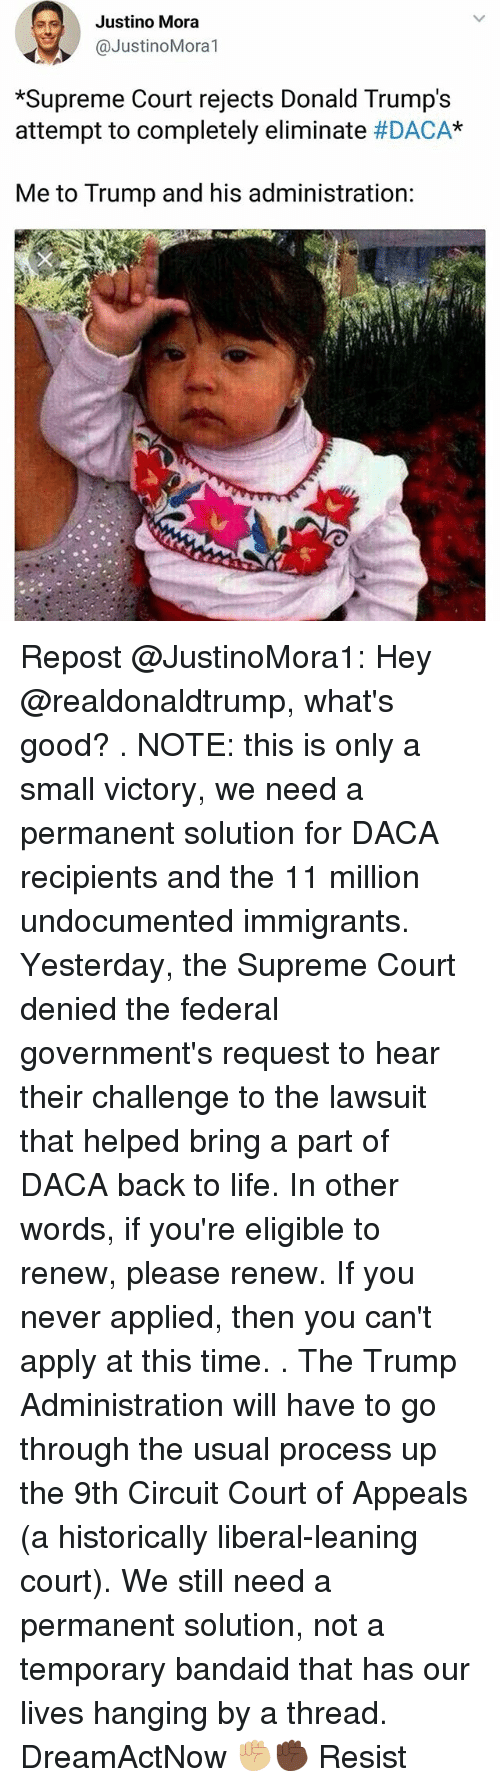 """Donald Trumps: Justino Mora  @JustinoMora1  *Supreme Court rejects Donald Trump's  attempt to completely eliminate #DACA""""  Me to Trump and his administration: Repost @JustinoMora1: Hey @realdonaldtrump, what's good? . NOTE: this is only a small victory, we need a permanent solution for DACA recipients and the 11 million undocumented immigrants. Yesterday, the Supreme Court denied the federal government's request to hear their challenge to the lawsuit that helped bring a part of DACA back to life. In other words, if you're eligible to renew, please renew. If you never applied, then you can't apply at this time. . The Trump Administration will have to go through the usual process up the 9th Circuit Court of Appeals (a historically liberal-leaning court). We still need a permanent solution, not a temporary bandaid that has our lives hanging by a thread. DreamActNow ✊🏼✊🏿 Resist"""